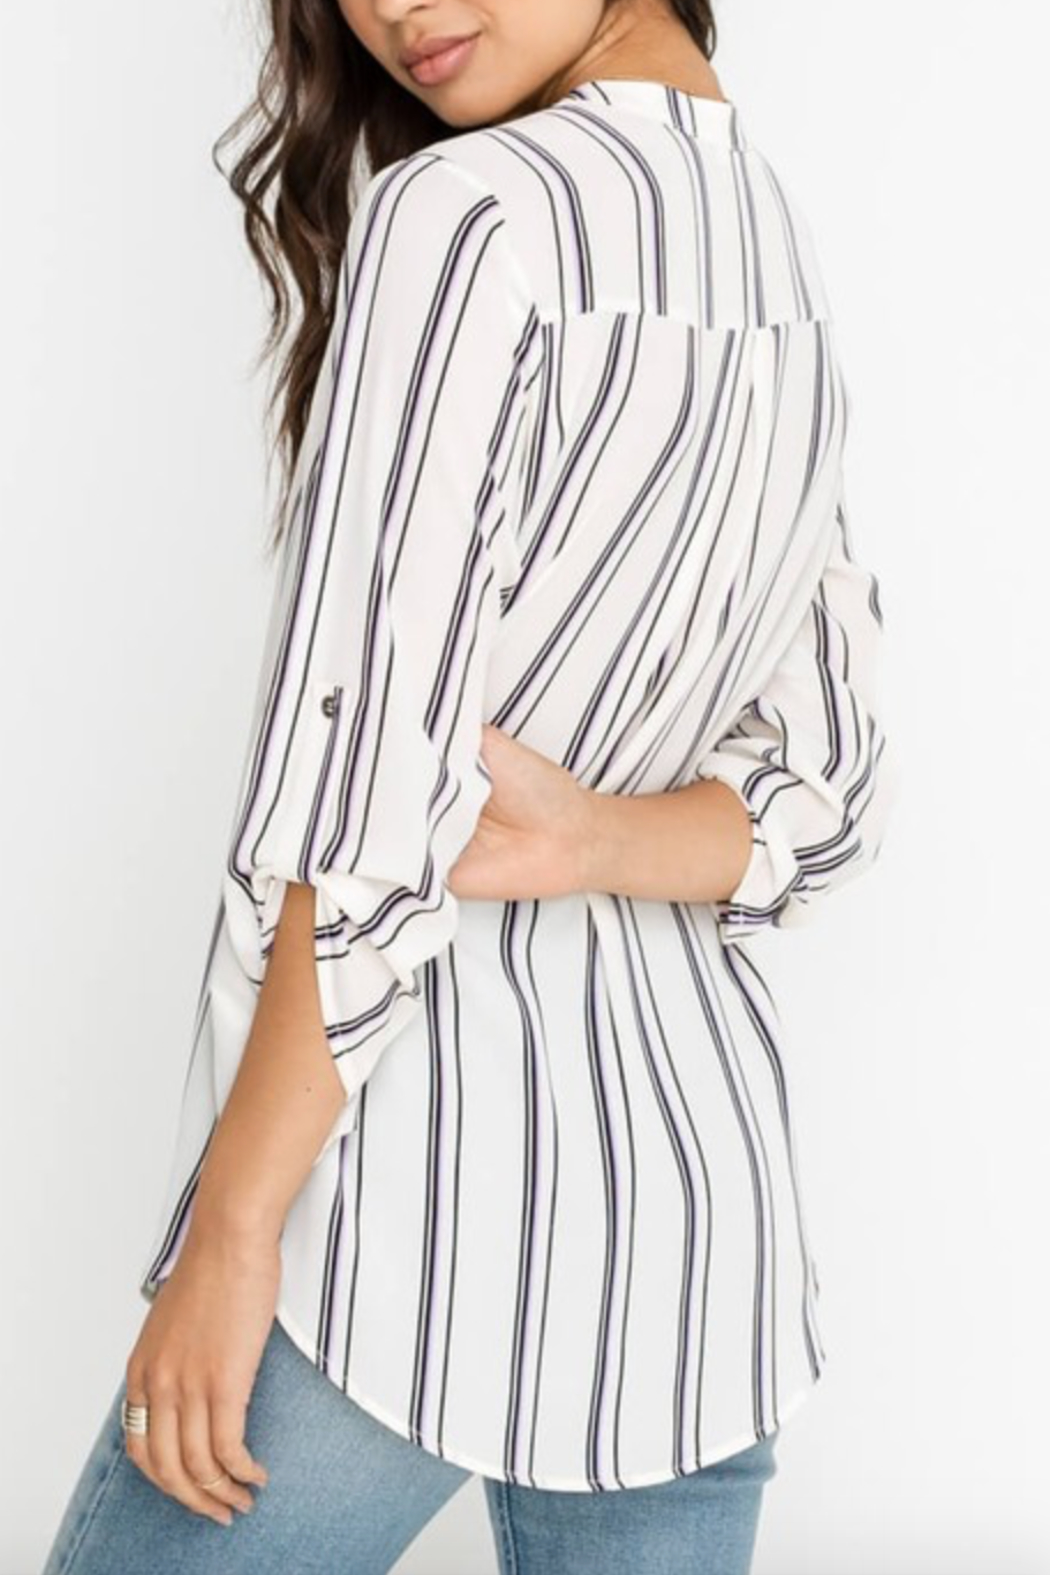 Lush Clothing  Striped Stacey V-Neck Tunic Top - Front Full Image